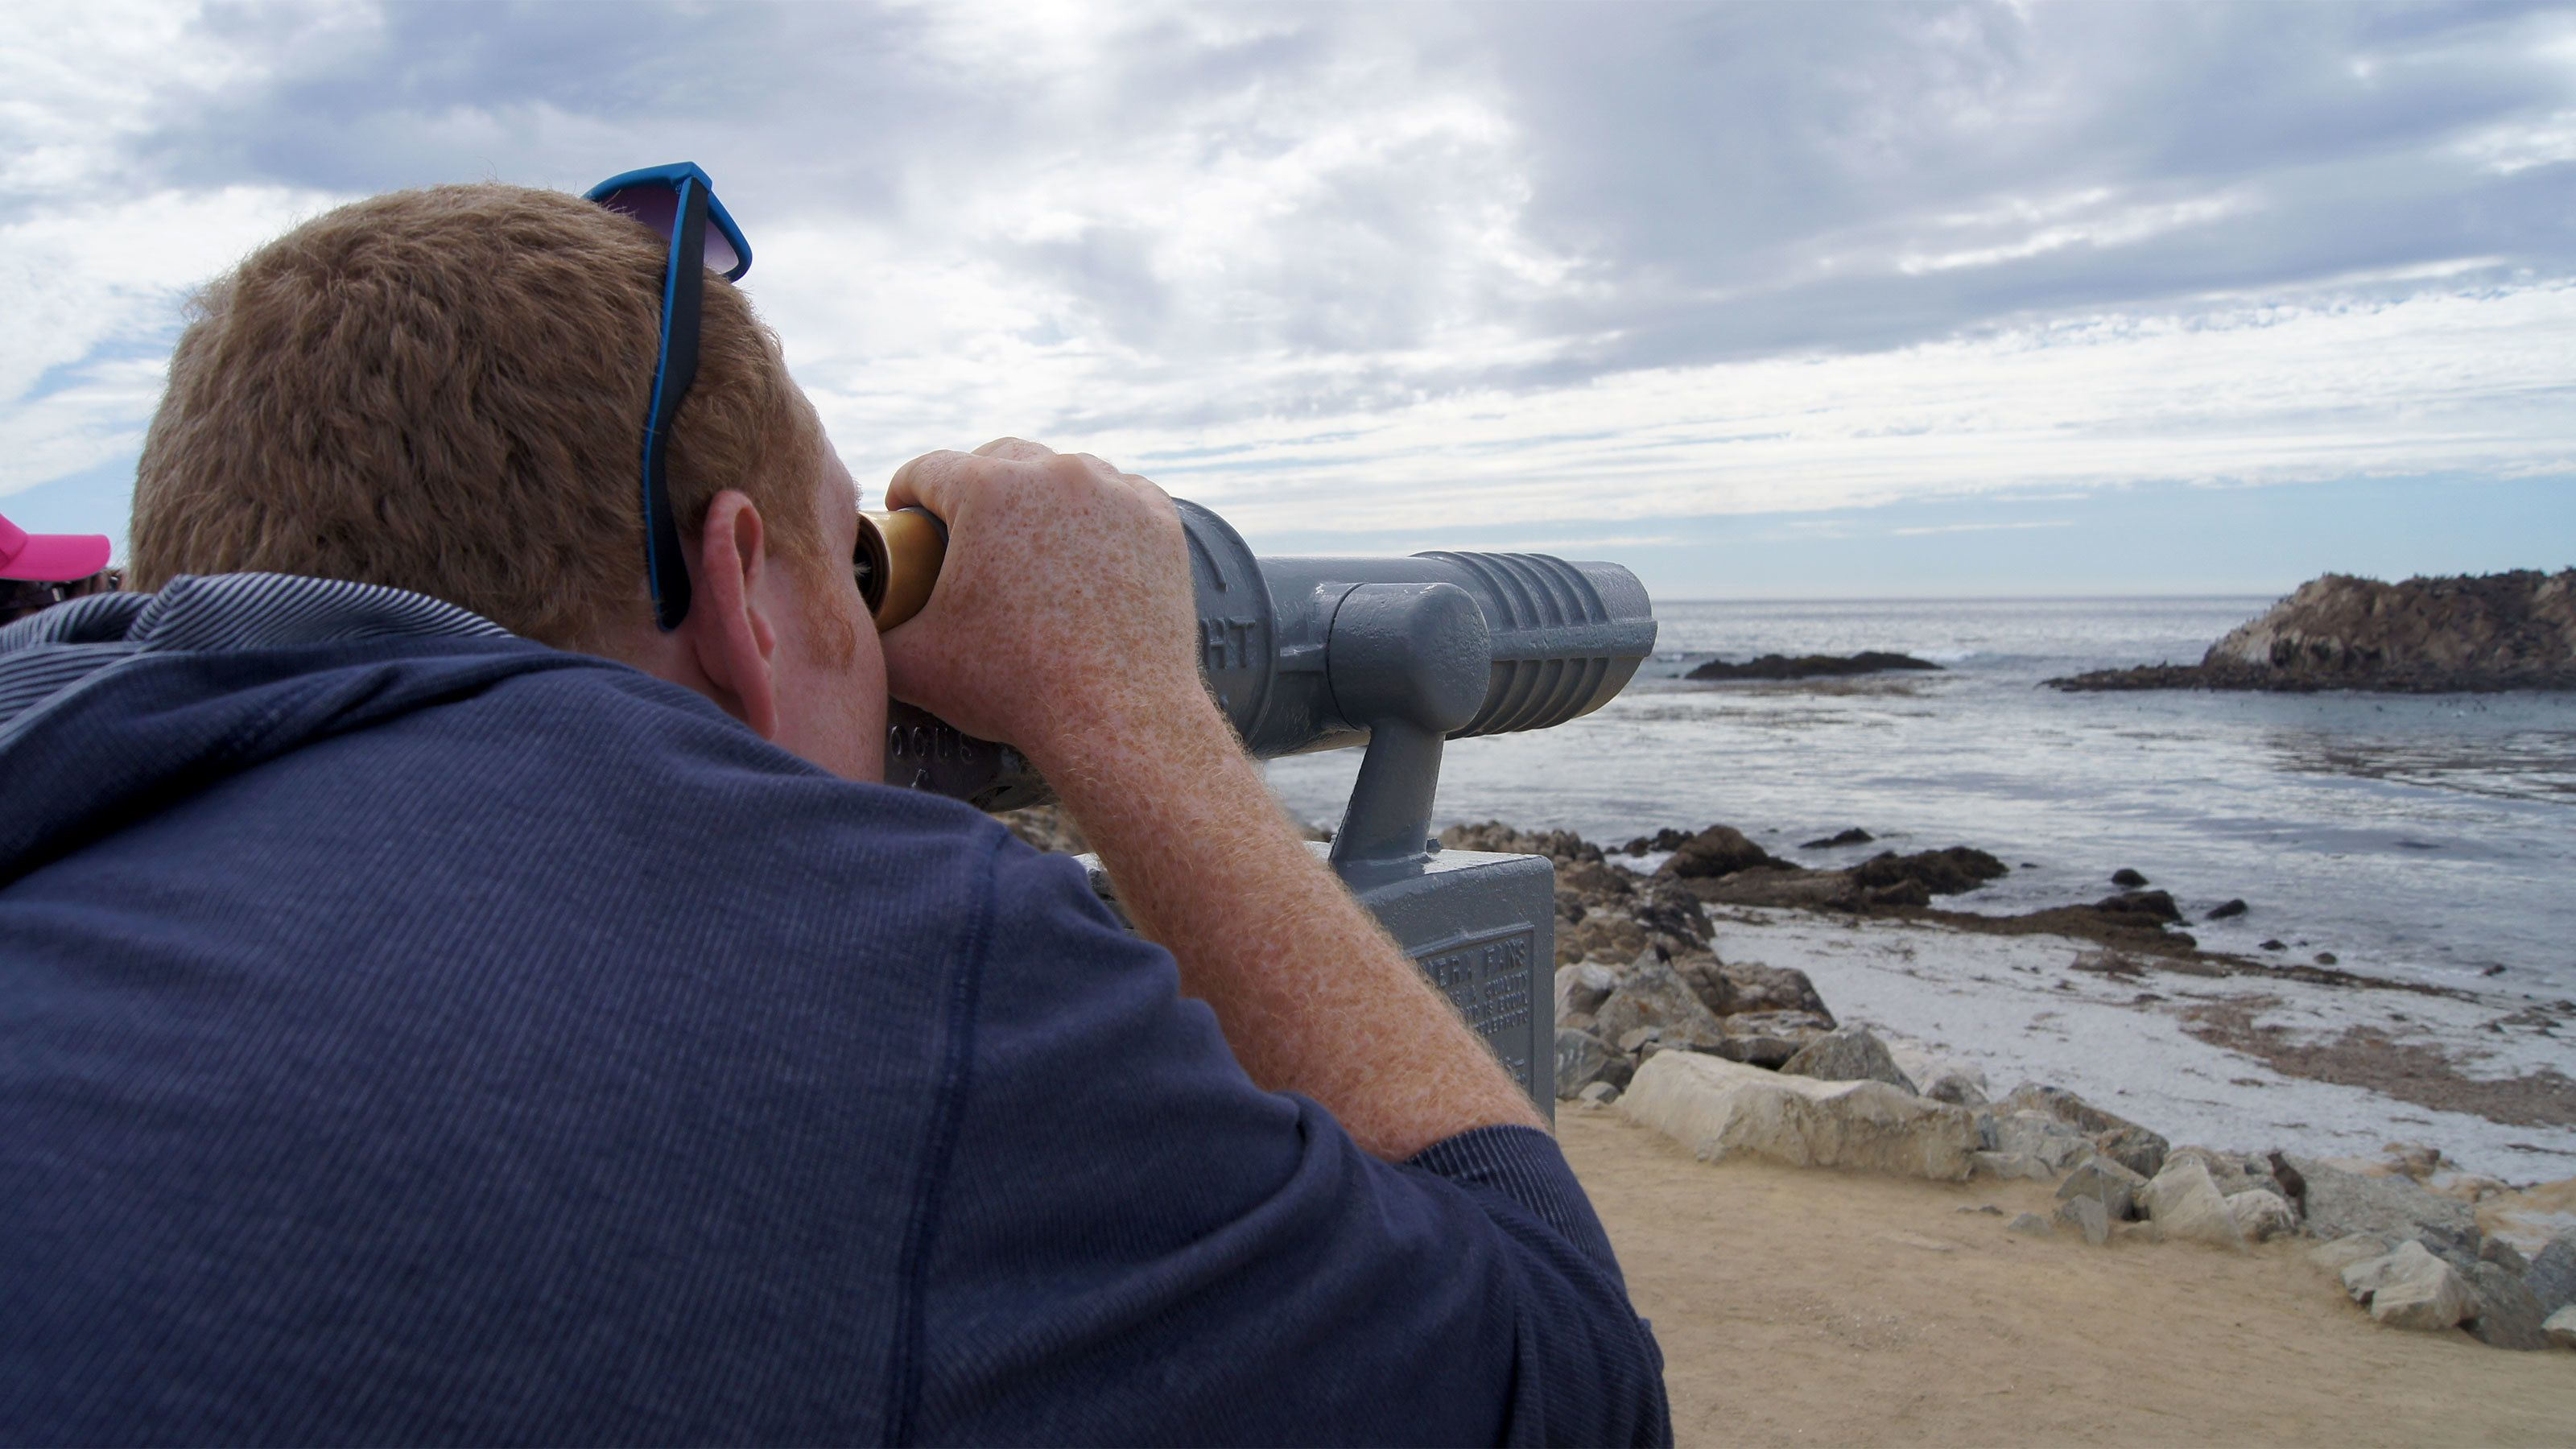 looking out to sea using coin operated binoculars in San Francisco